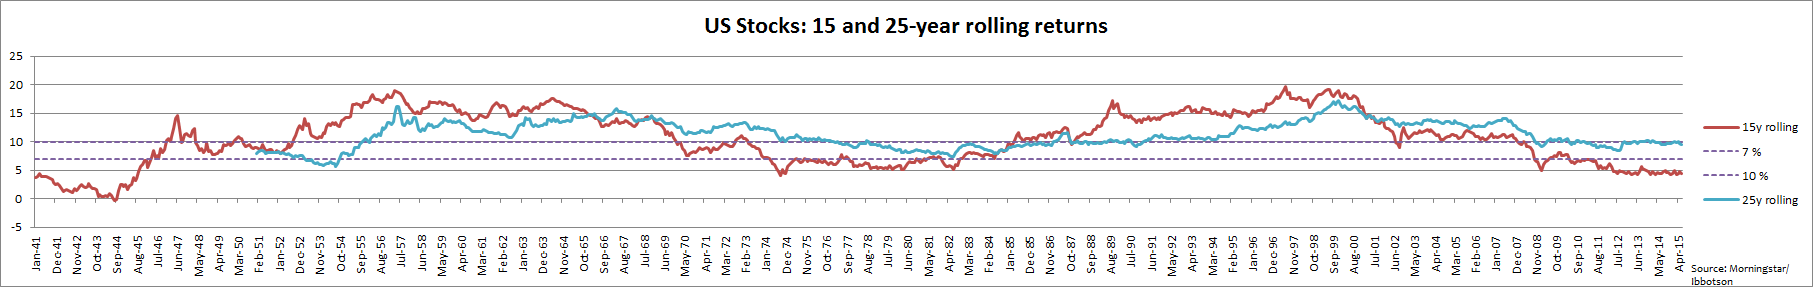 US Stocks 15 and 25 year rolling returns Ibbotson data